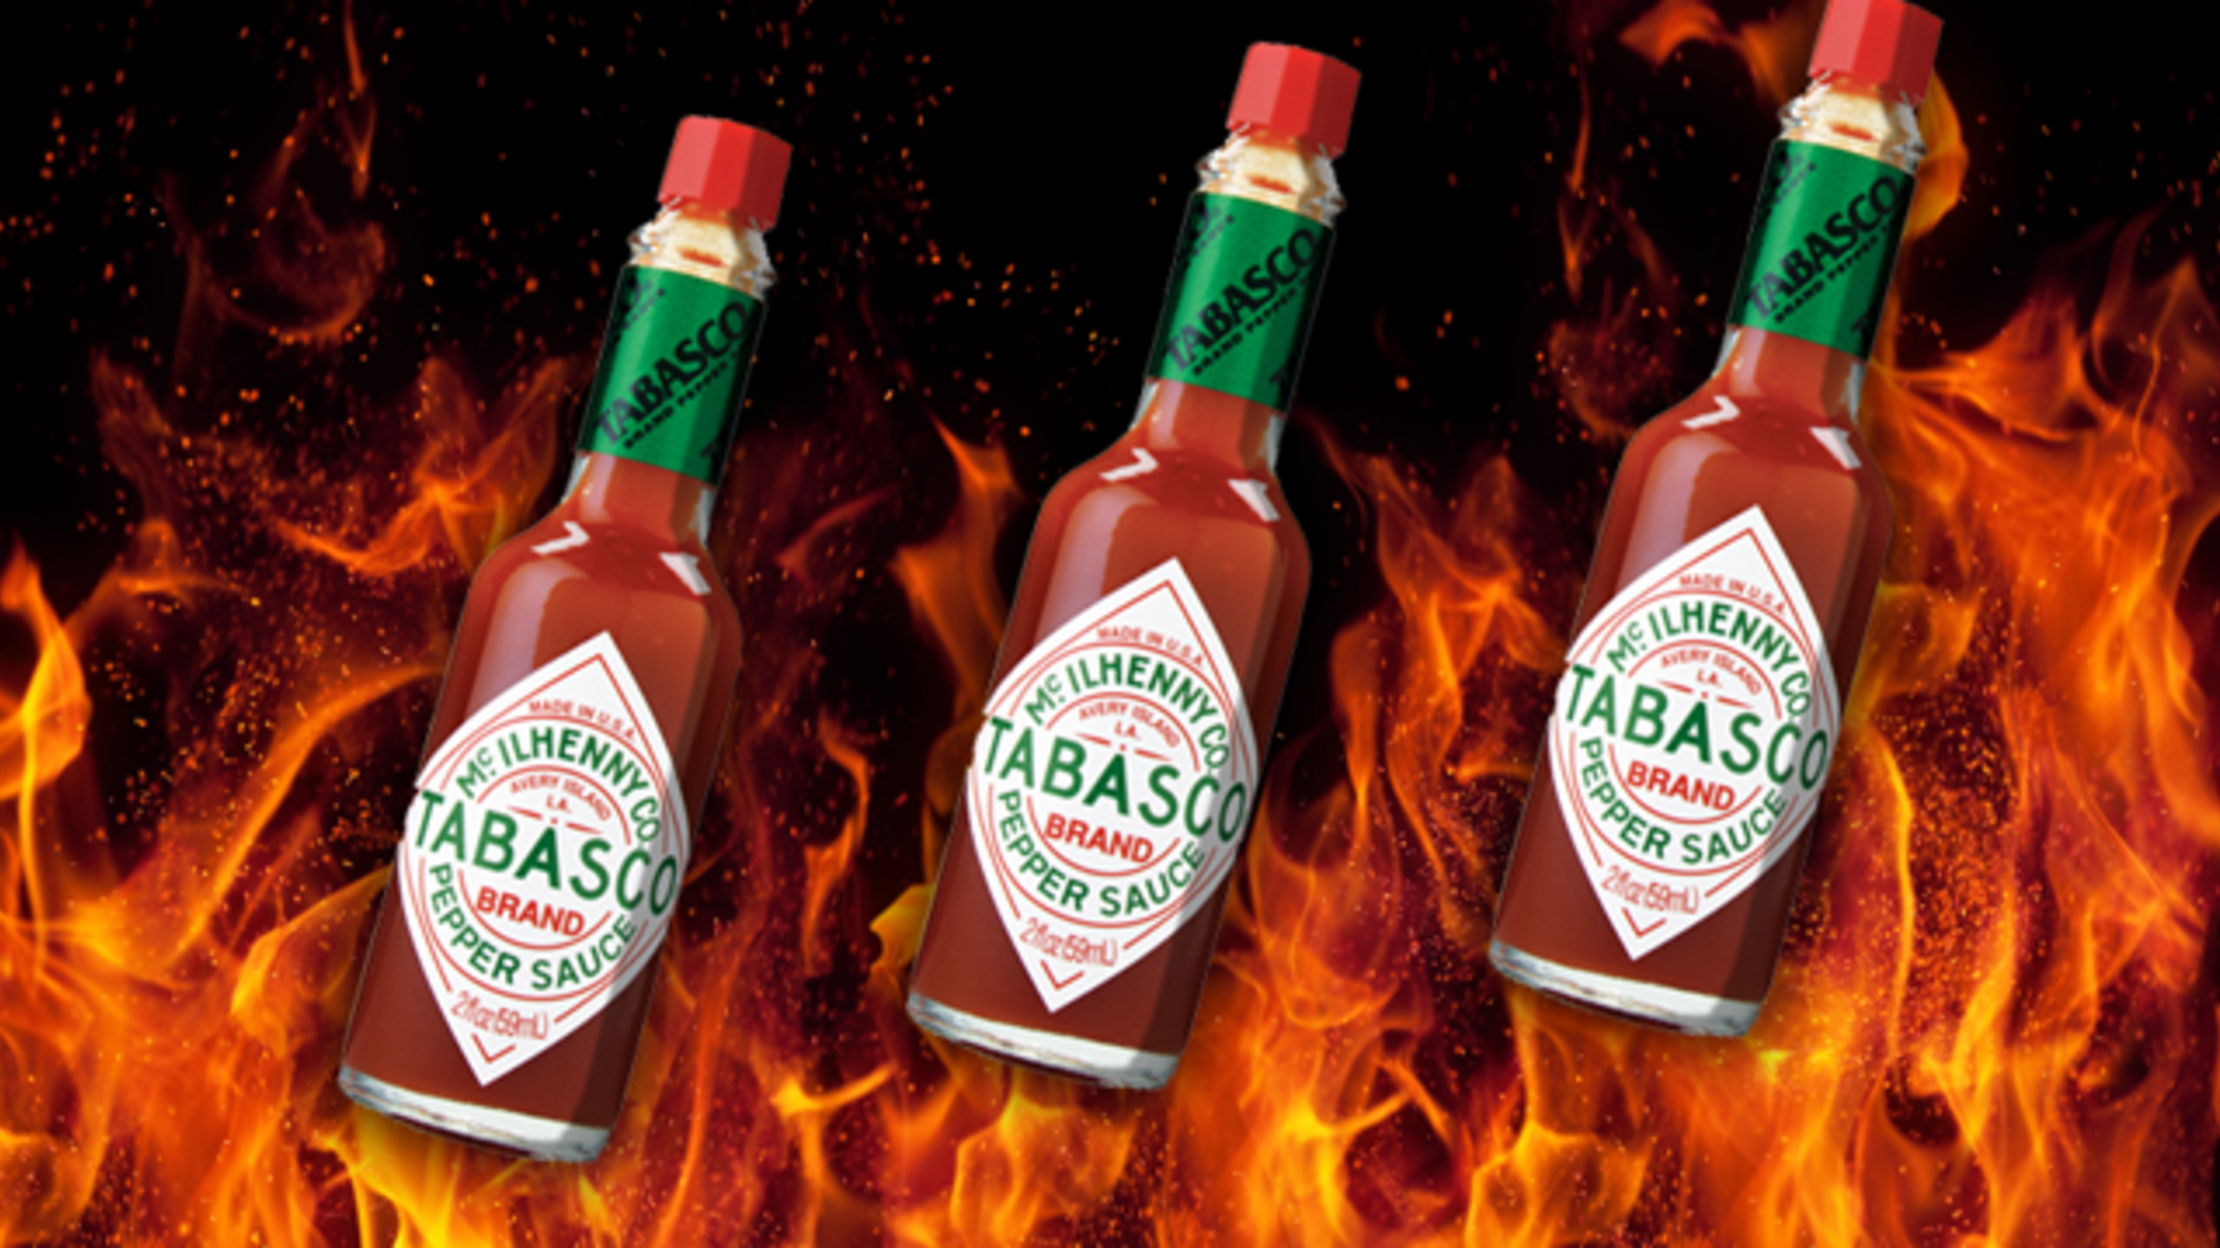 15 Things You Probably Didnt Know About Tabasco Sauce Mental Floss